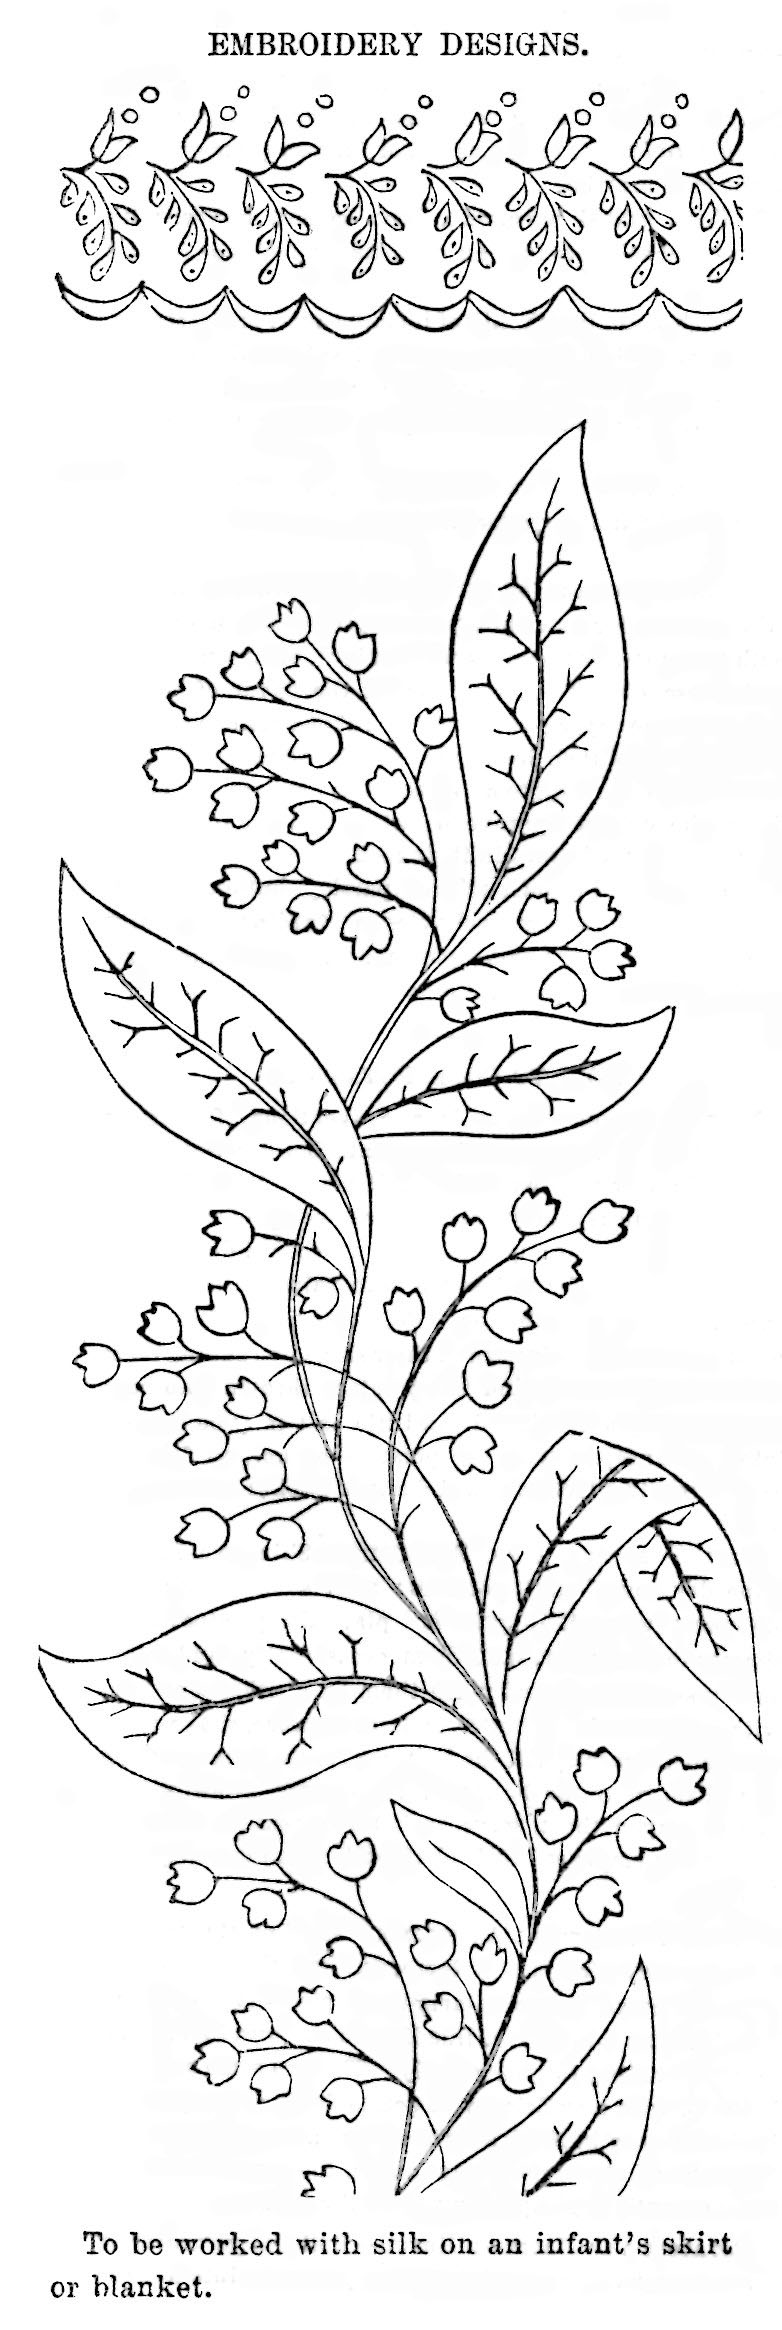 Lily of the valley archives vintage crafts and more lily of the valley embroidery pattern vintage crafts and more izmirmasajfo